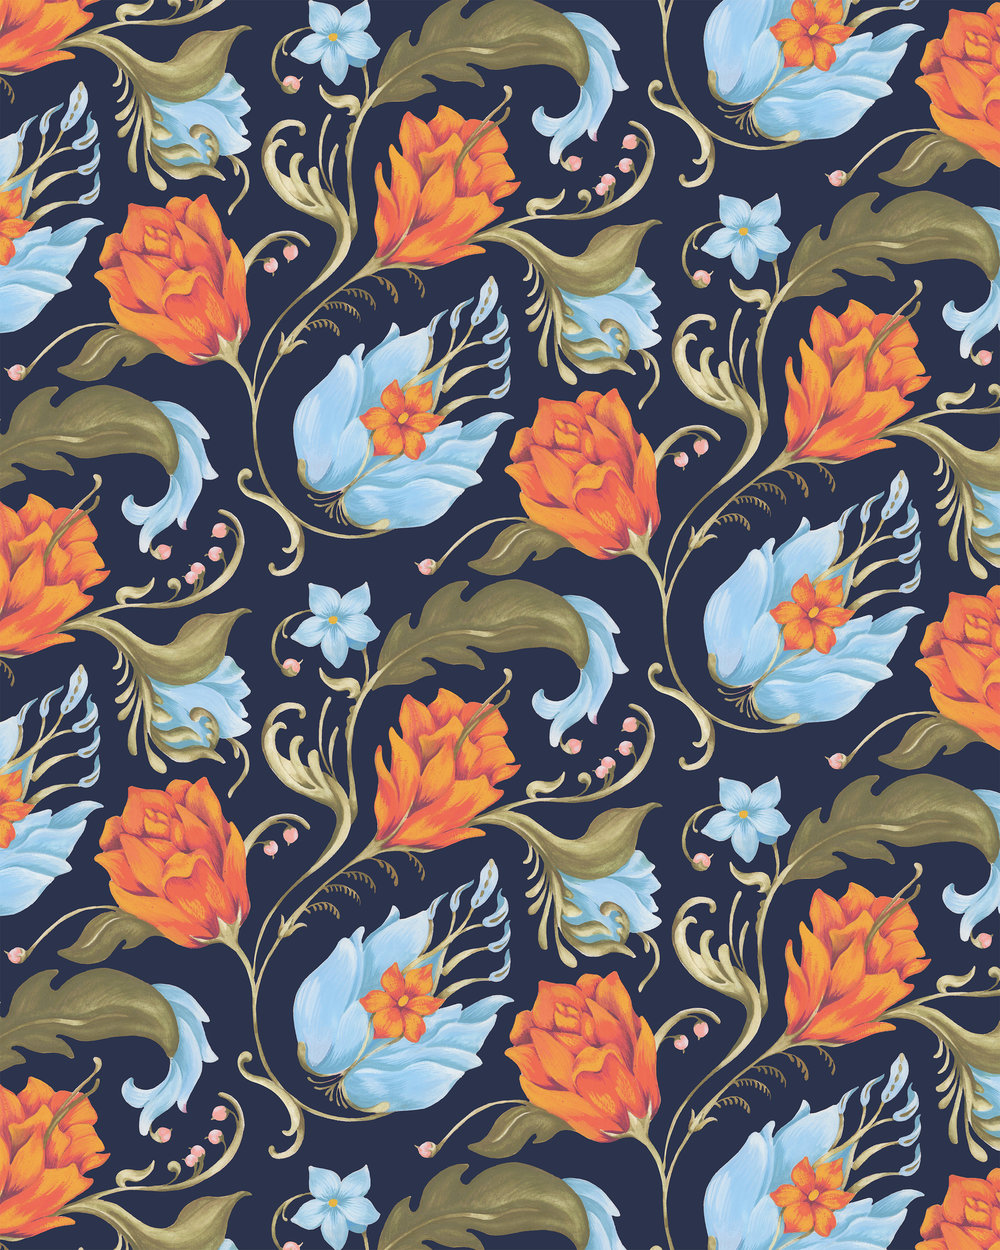 Designs by Katy Rosenthal Renaissance Floral Navy.jpg